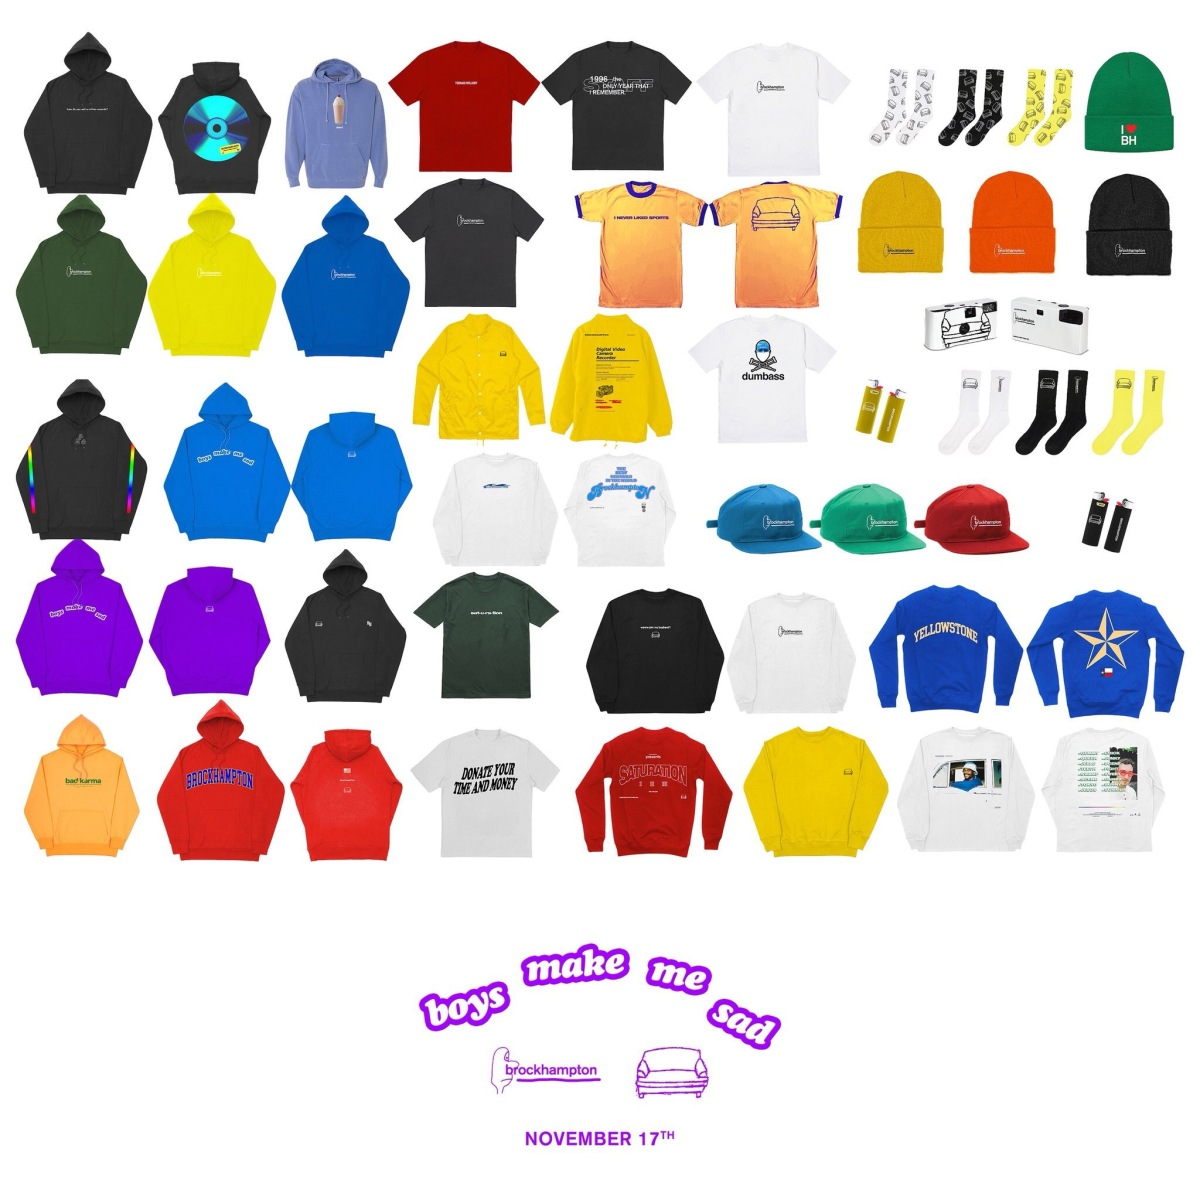 Brockhampton set to release new line of merch